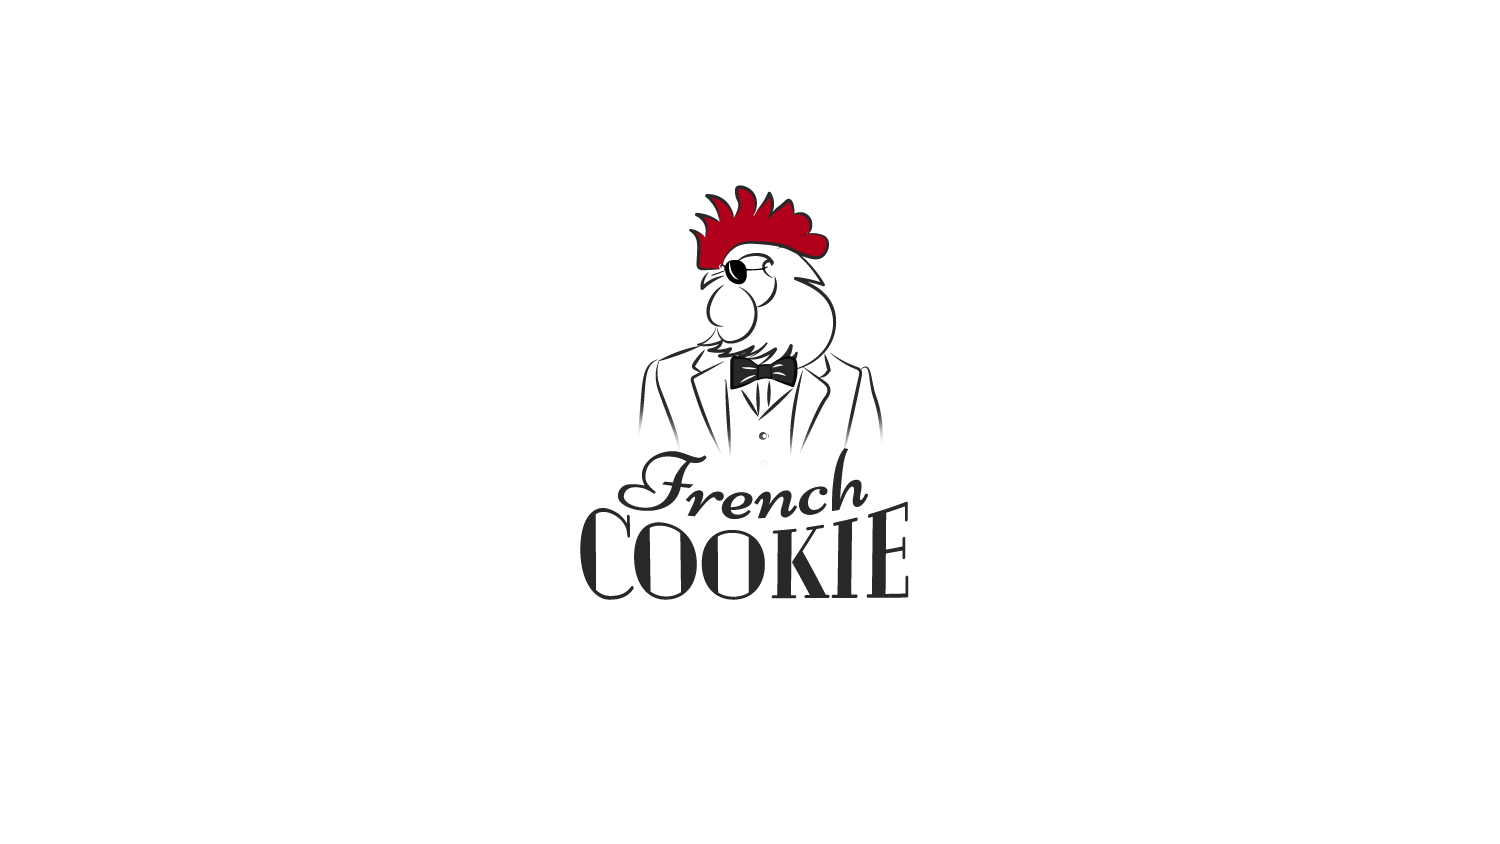 Rooster Logo for a French Cookie business by rimakhachatryan